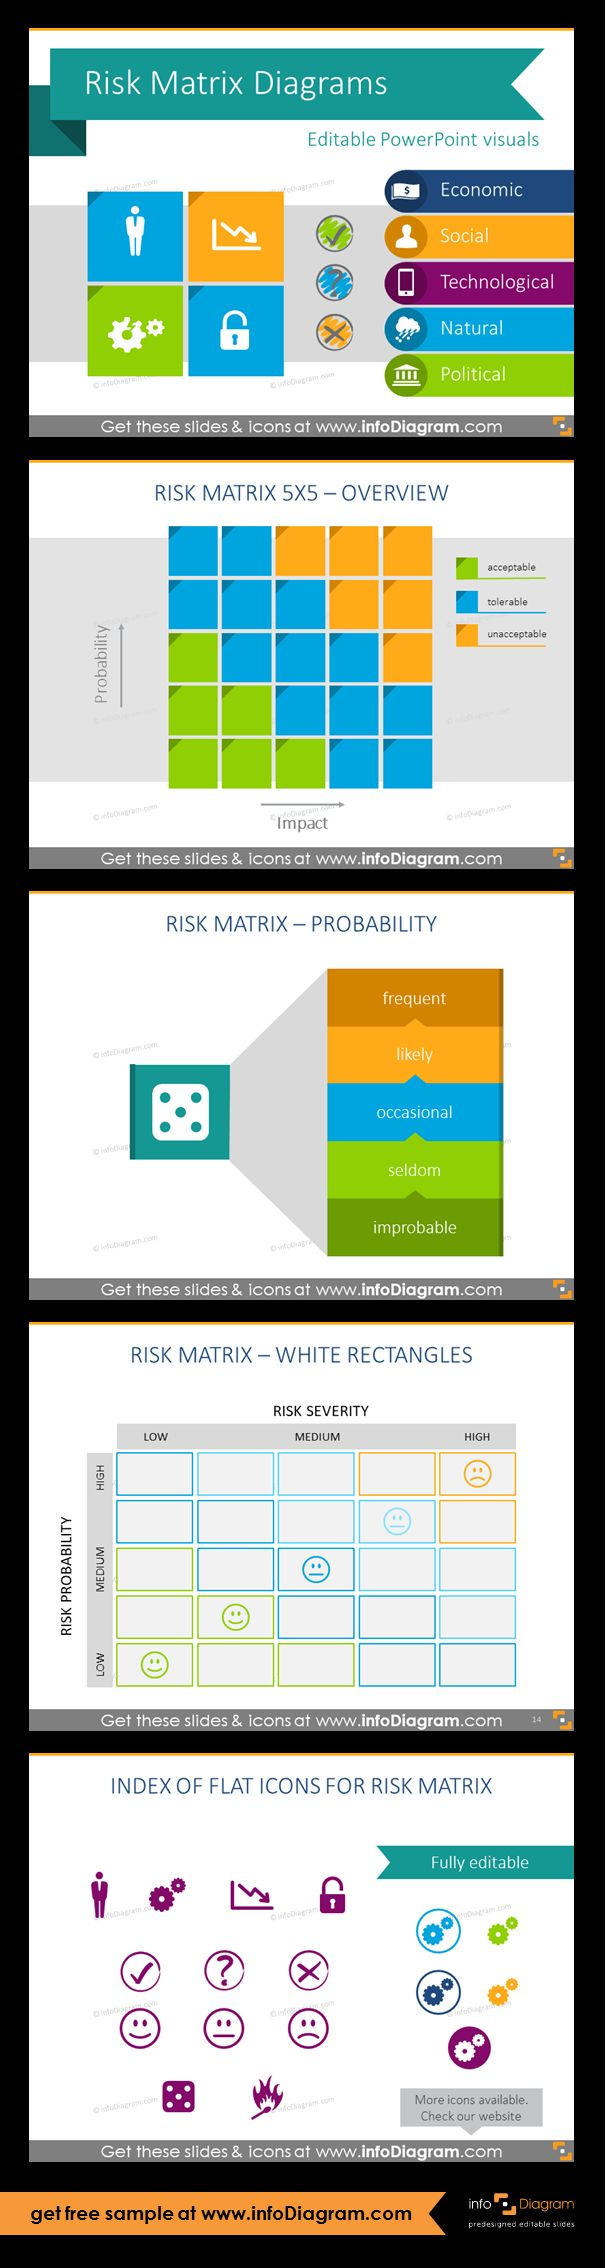 13 matrix PPT slide layouts for expressing Risk levels in two dimensions. This pre-designed PowerPoint visuals can be used to illustrate risk estimation by severity and probability levels. 5x5 matrix overview; types of probability chart; risk matrix - white rectangles version; flat icons set. These diagrams become an indispensable assistant for everybody who wants to visualize levels and kinds of risk.